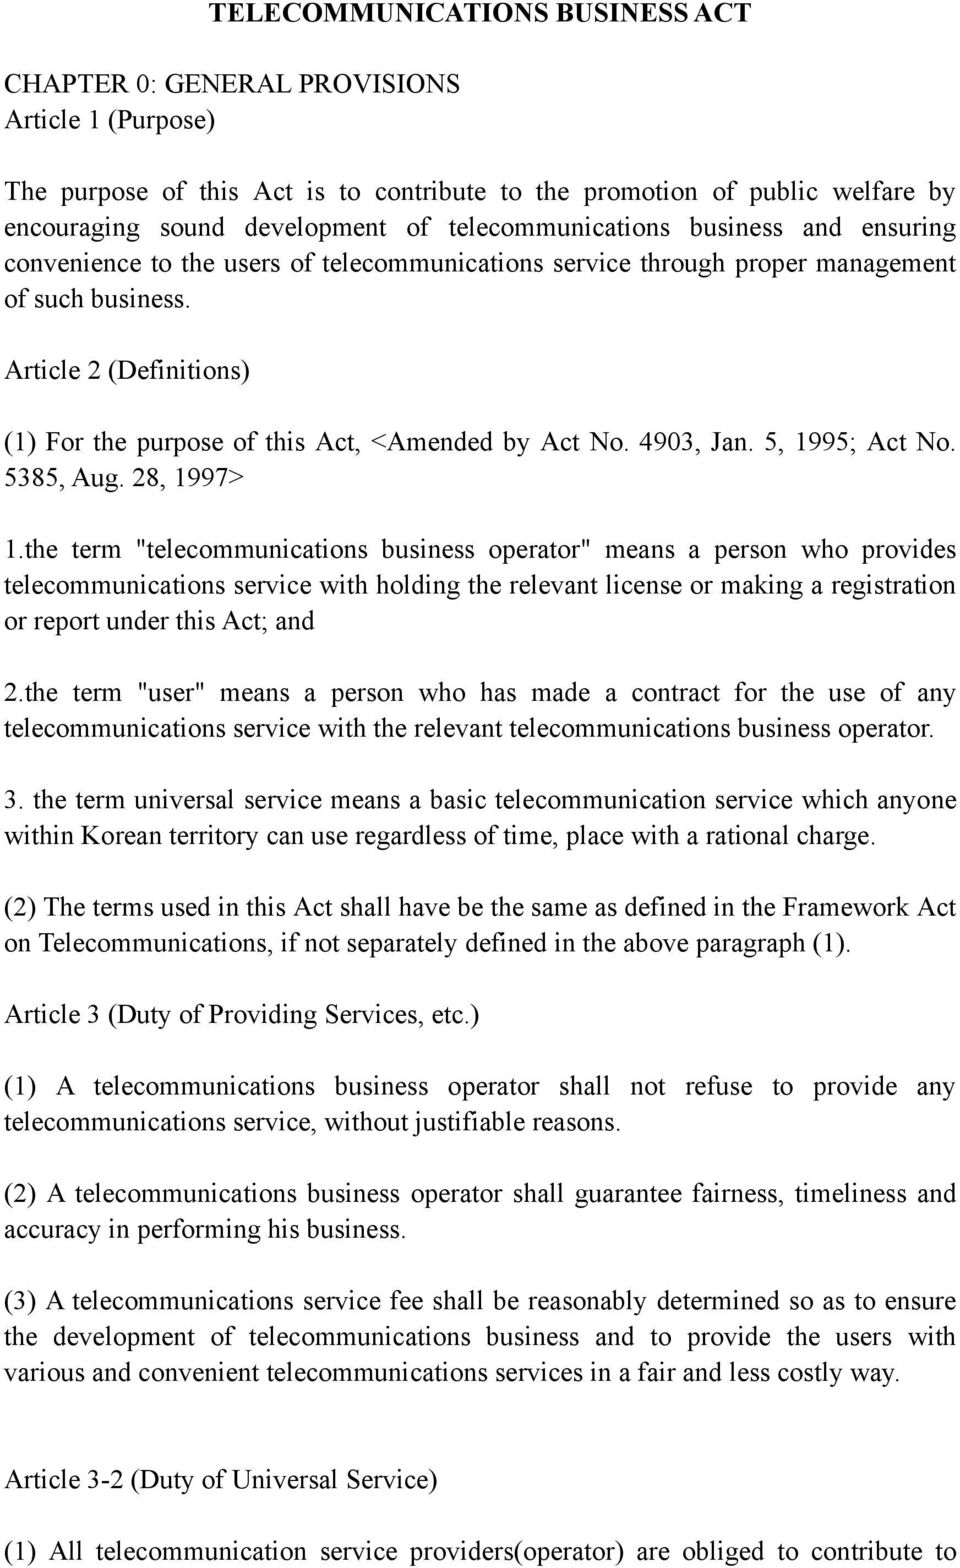 Article 2 (Definitions) (1) For the purpose of this Act, <Amended by Act No. 4903, Jan. 5, 1995; Act No. 5385, Aug. 28, 1997> 1.